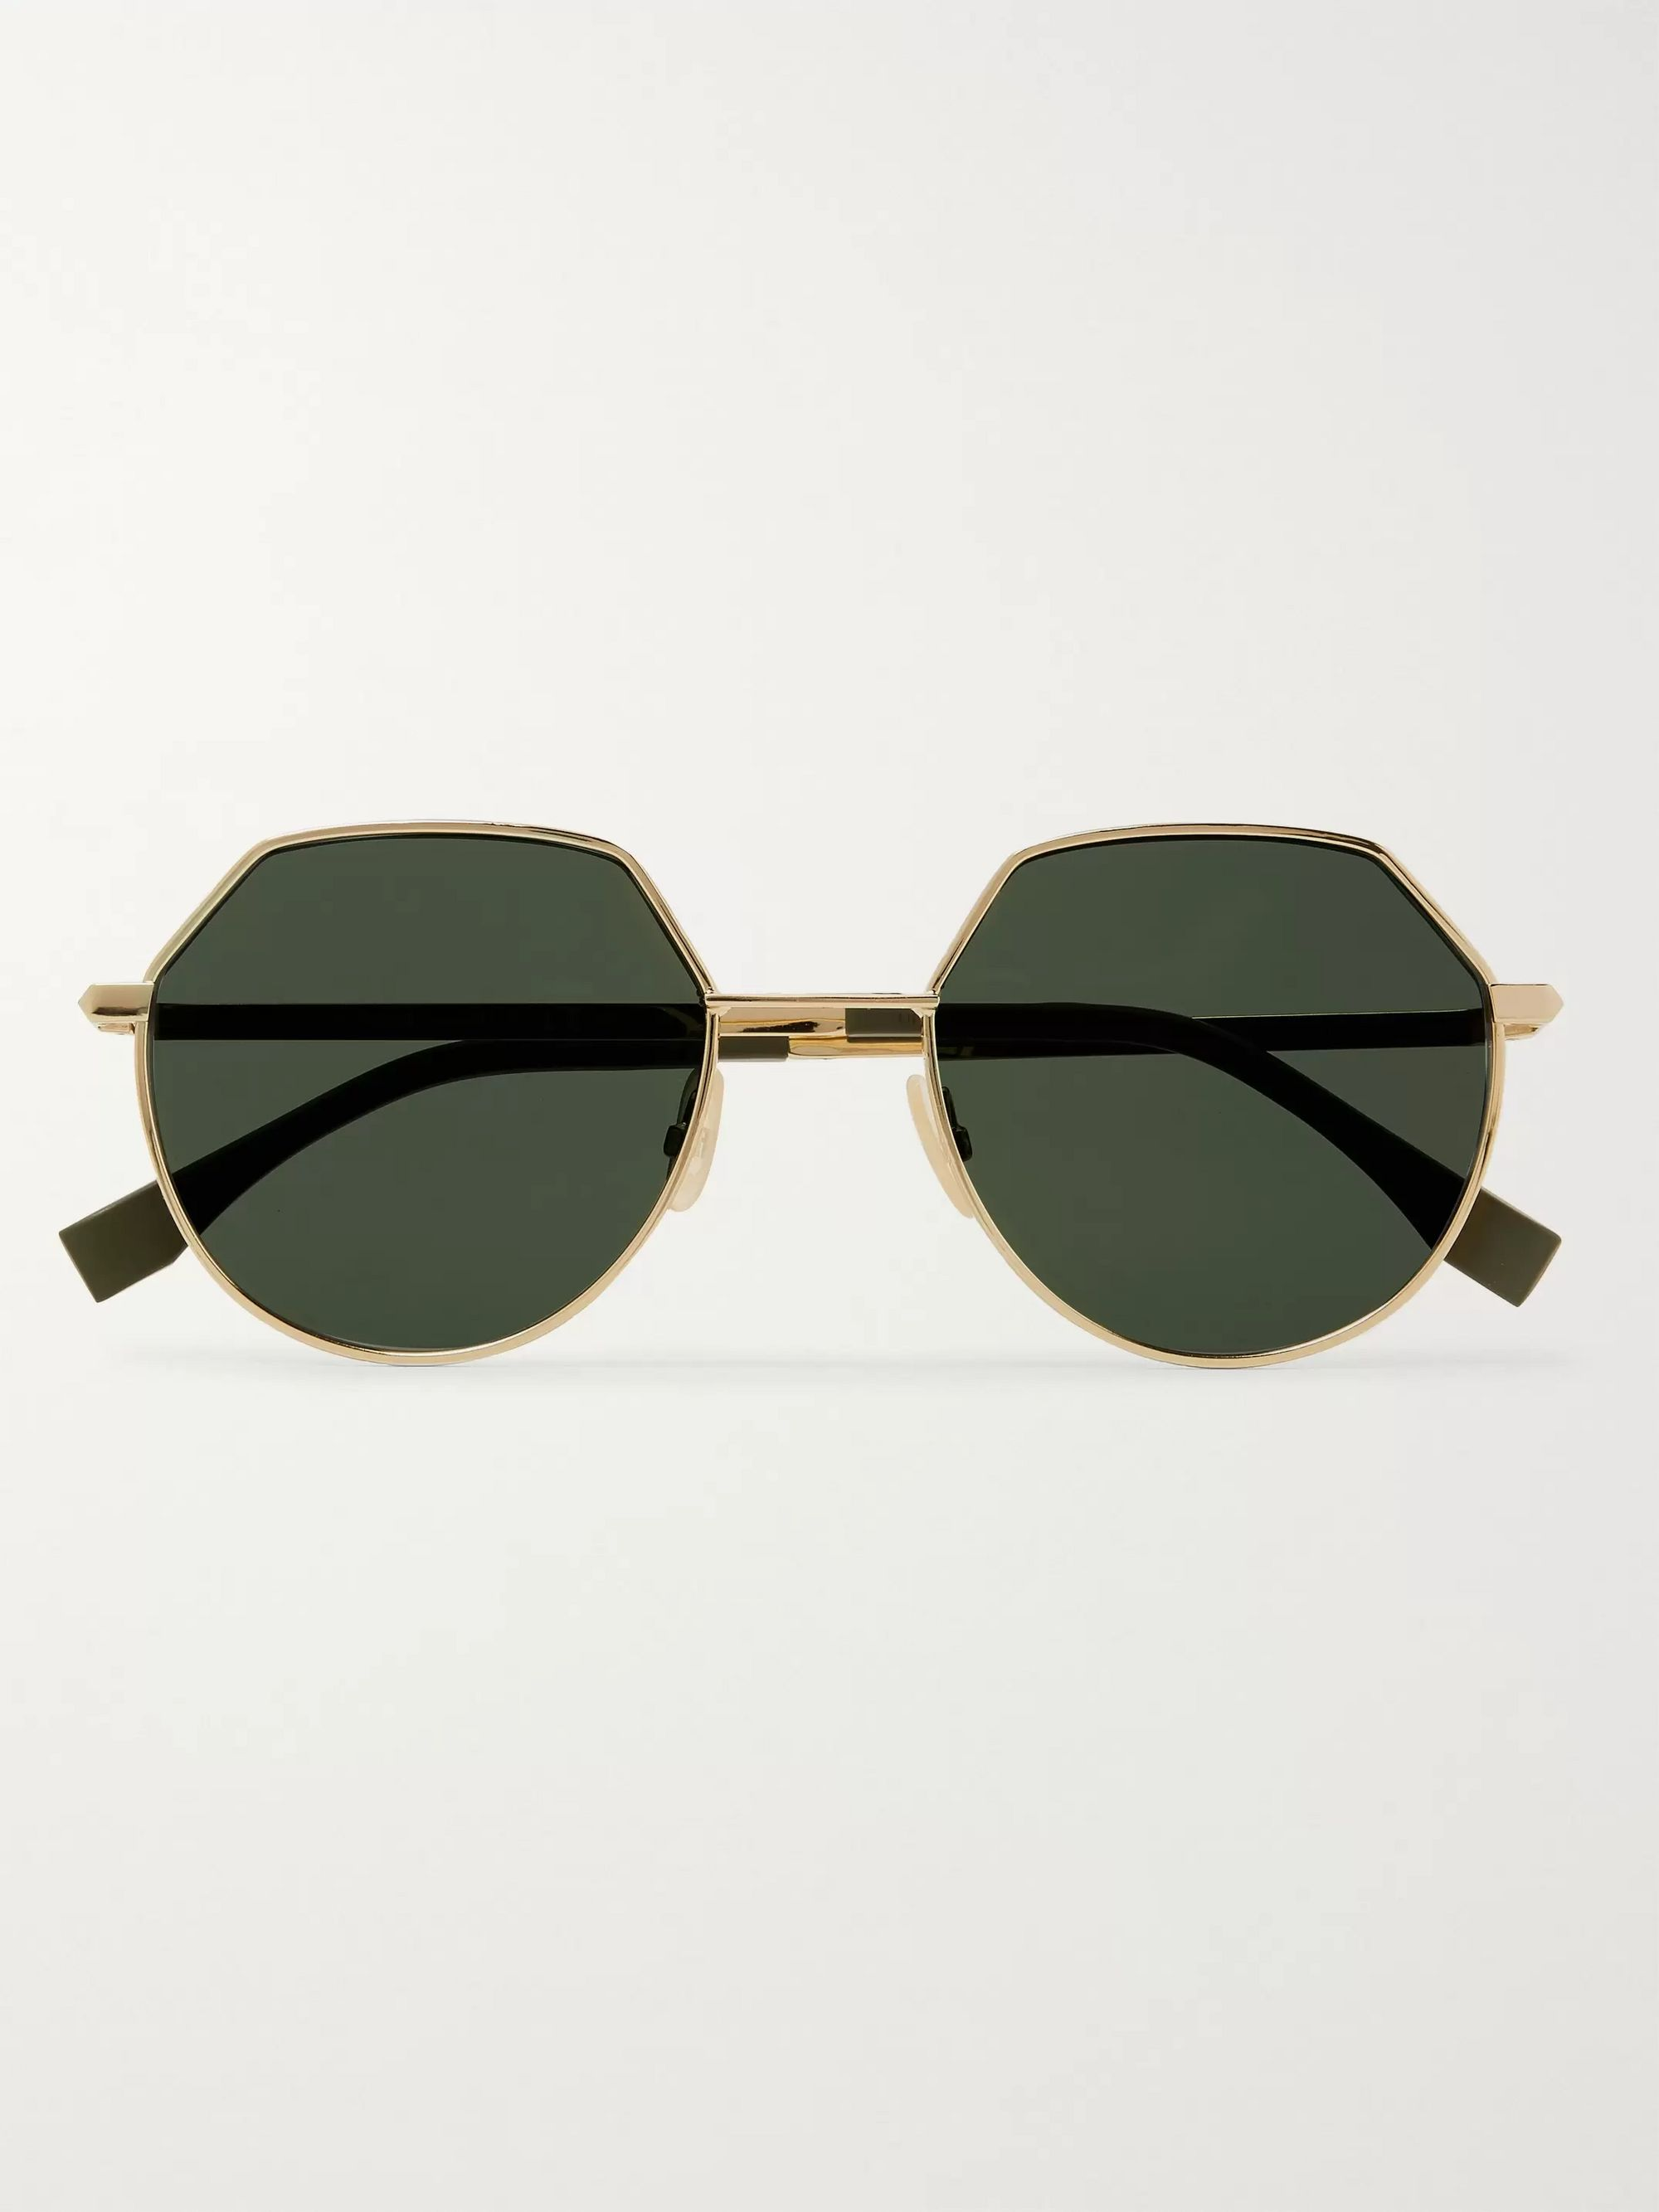 Fendi Round-Frame Gold-Tone Sunglasses